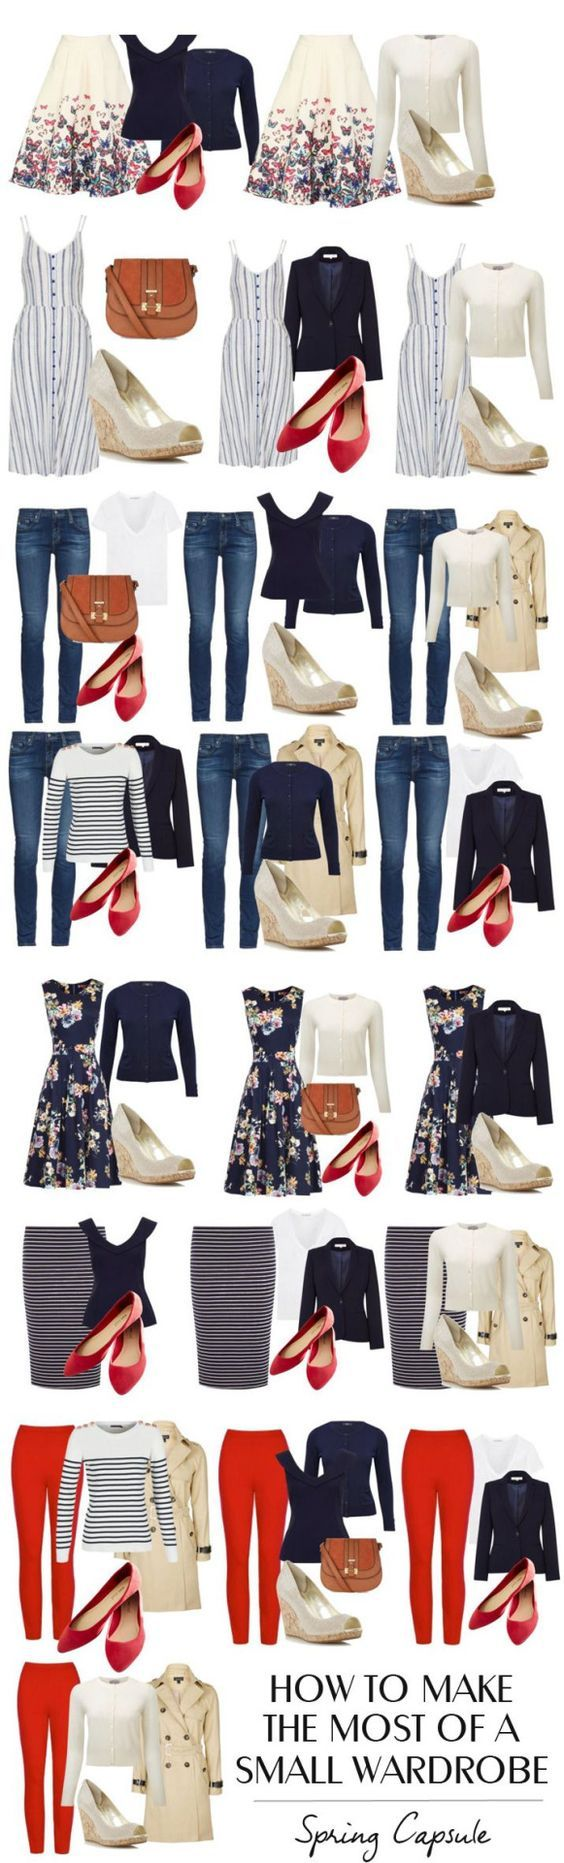 """Tendance Chaussures Classic Capsule Wardrobe for Spring 2016 > Womens Fashion Police Tendance & idée Chaussures Femme 2016/2017 Womens Fashion Police""""> Description How to make the most of a very small wardrobe: spring capsule wardrobe"""